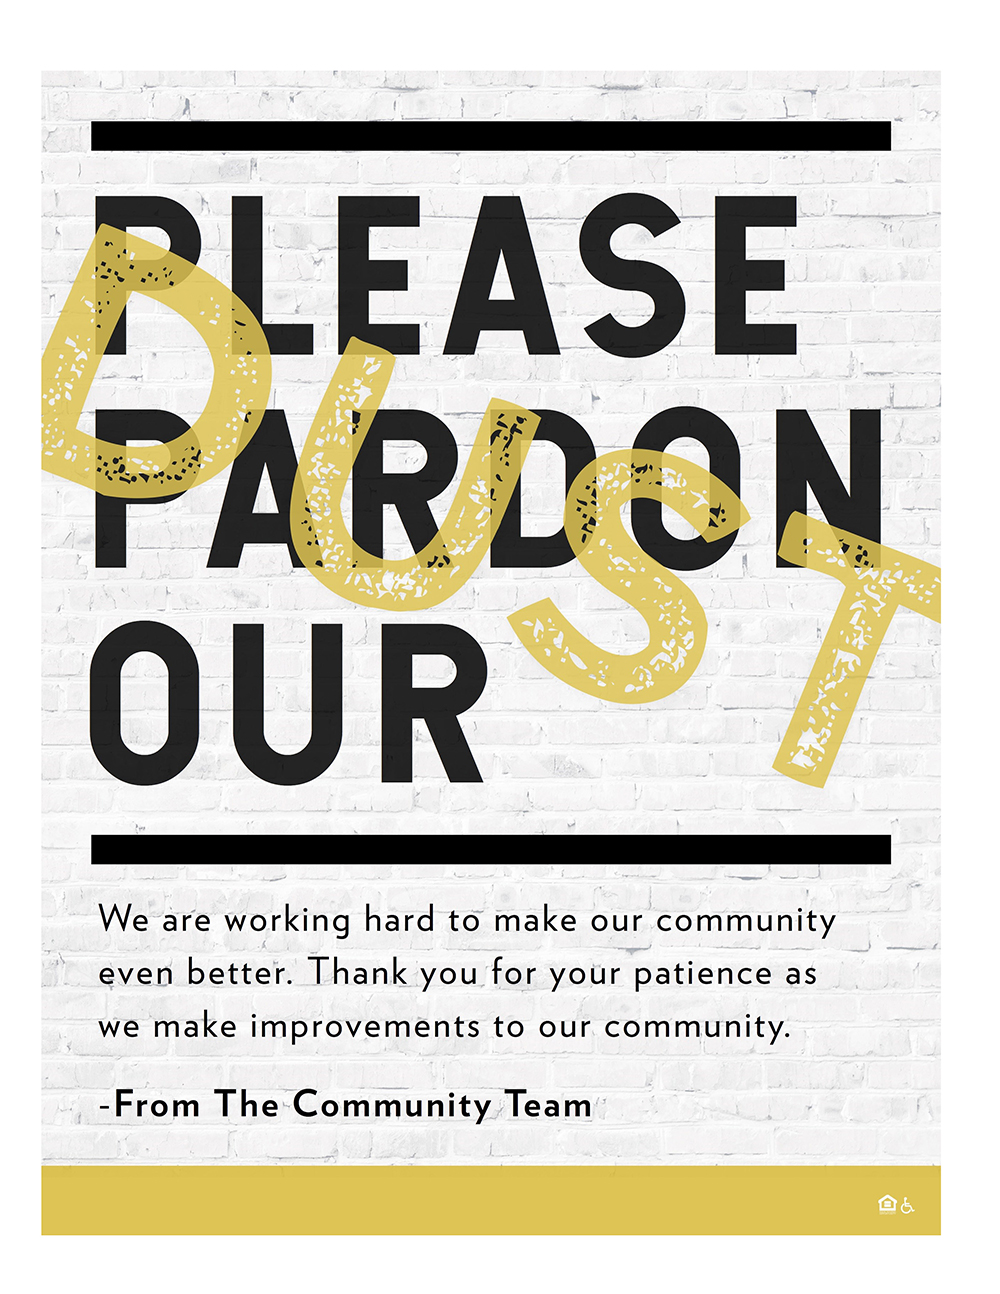 Pardon our dust as we work to make the community even better.